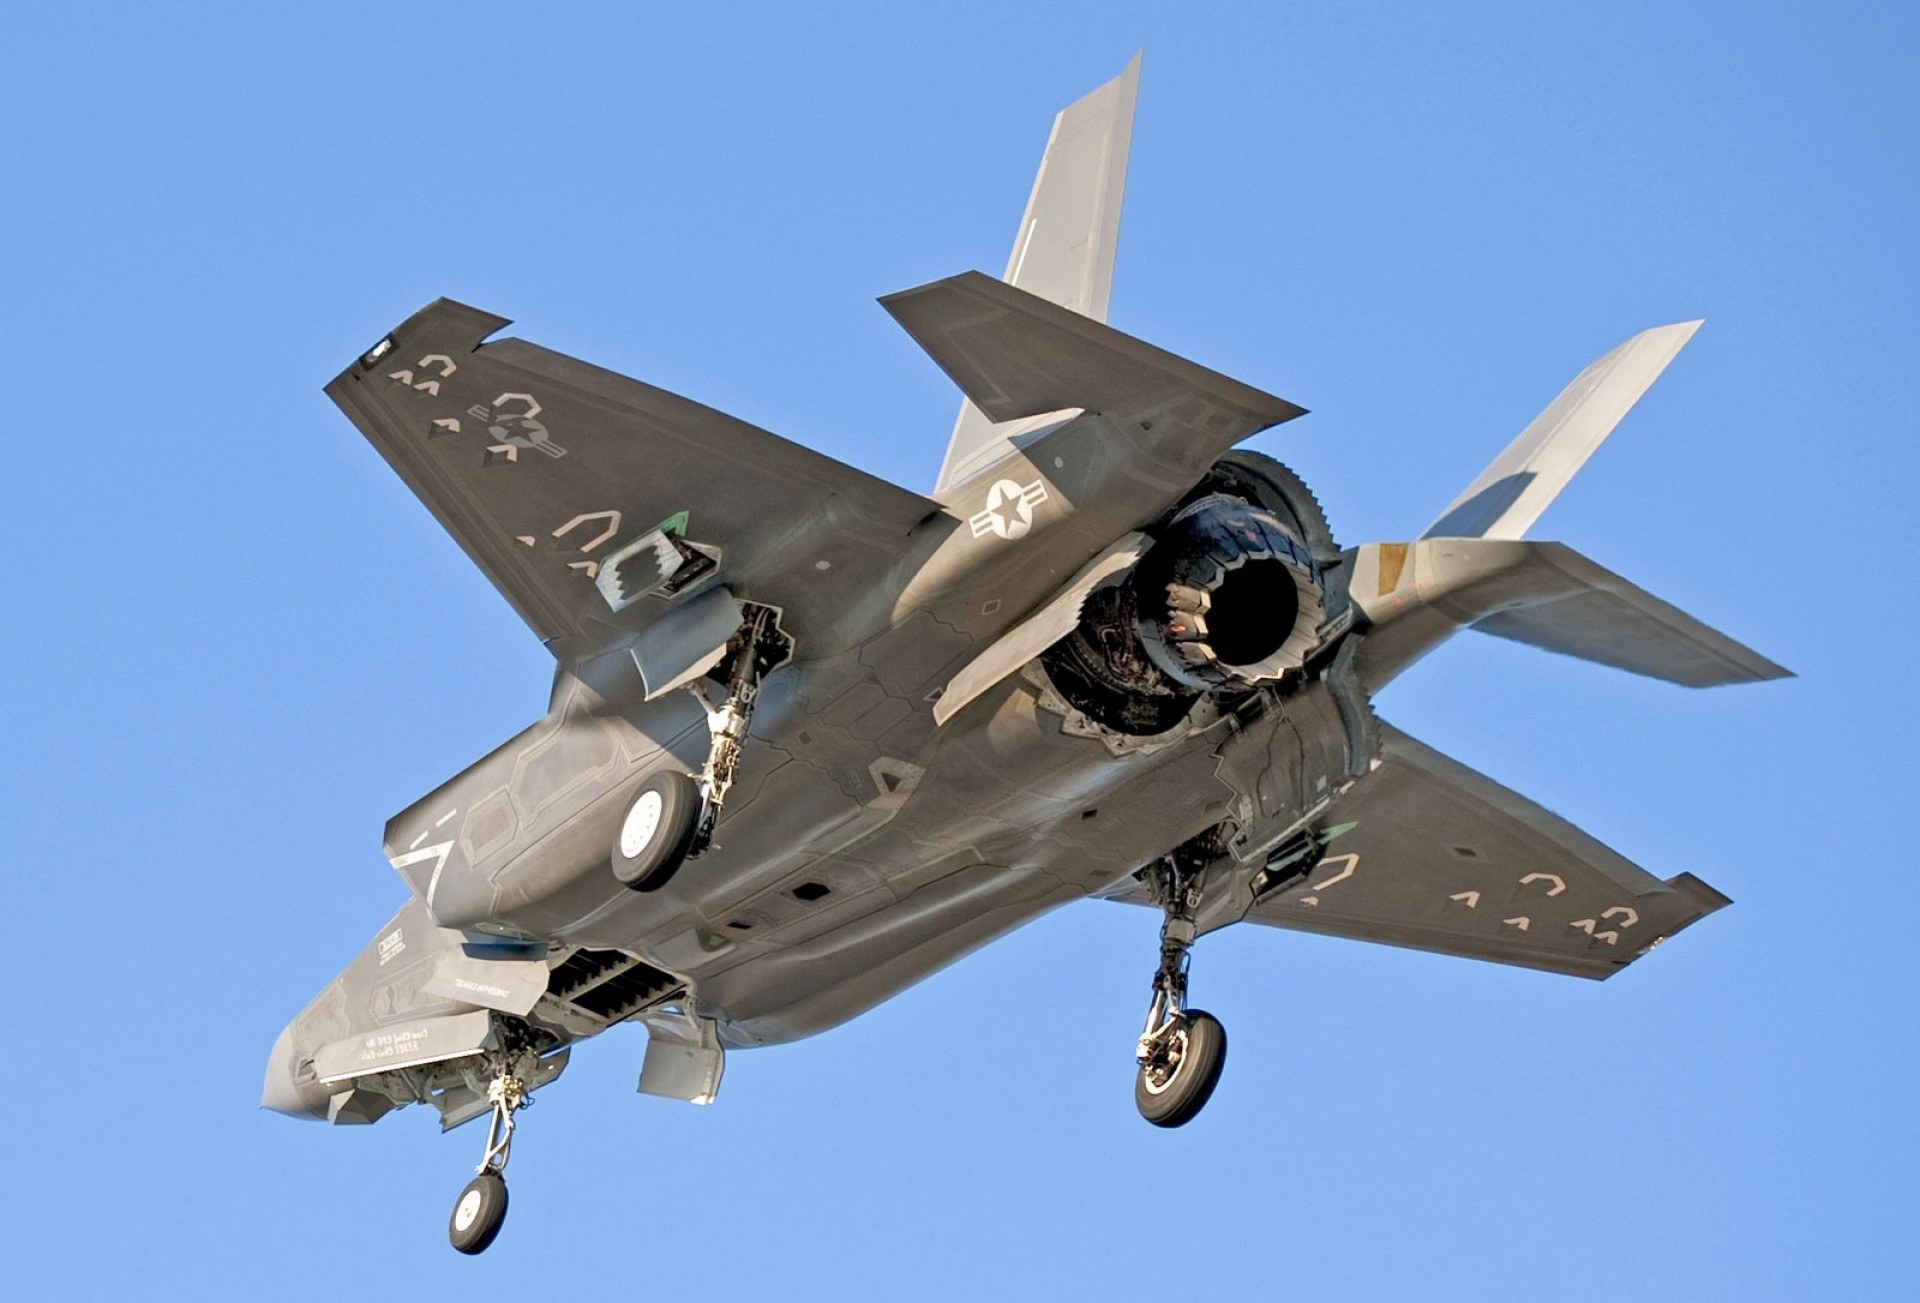 Thrust Vector Control: Could We Use The F Bs Thrust Vectoring Nozzle To Create Most Maneuverable Aircraft Ever